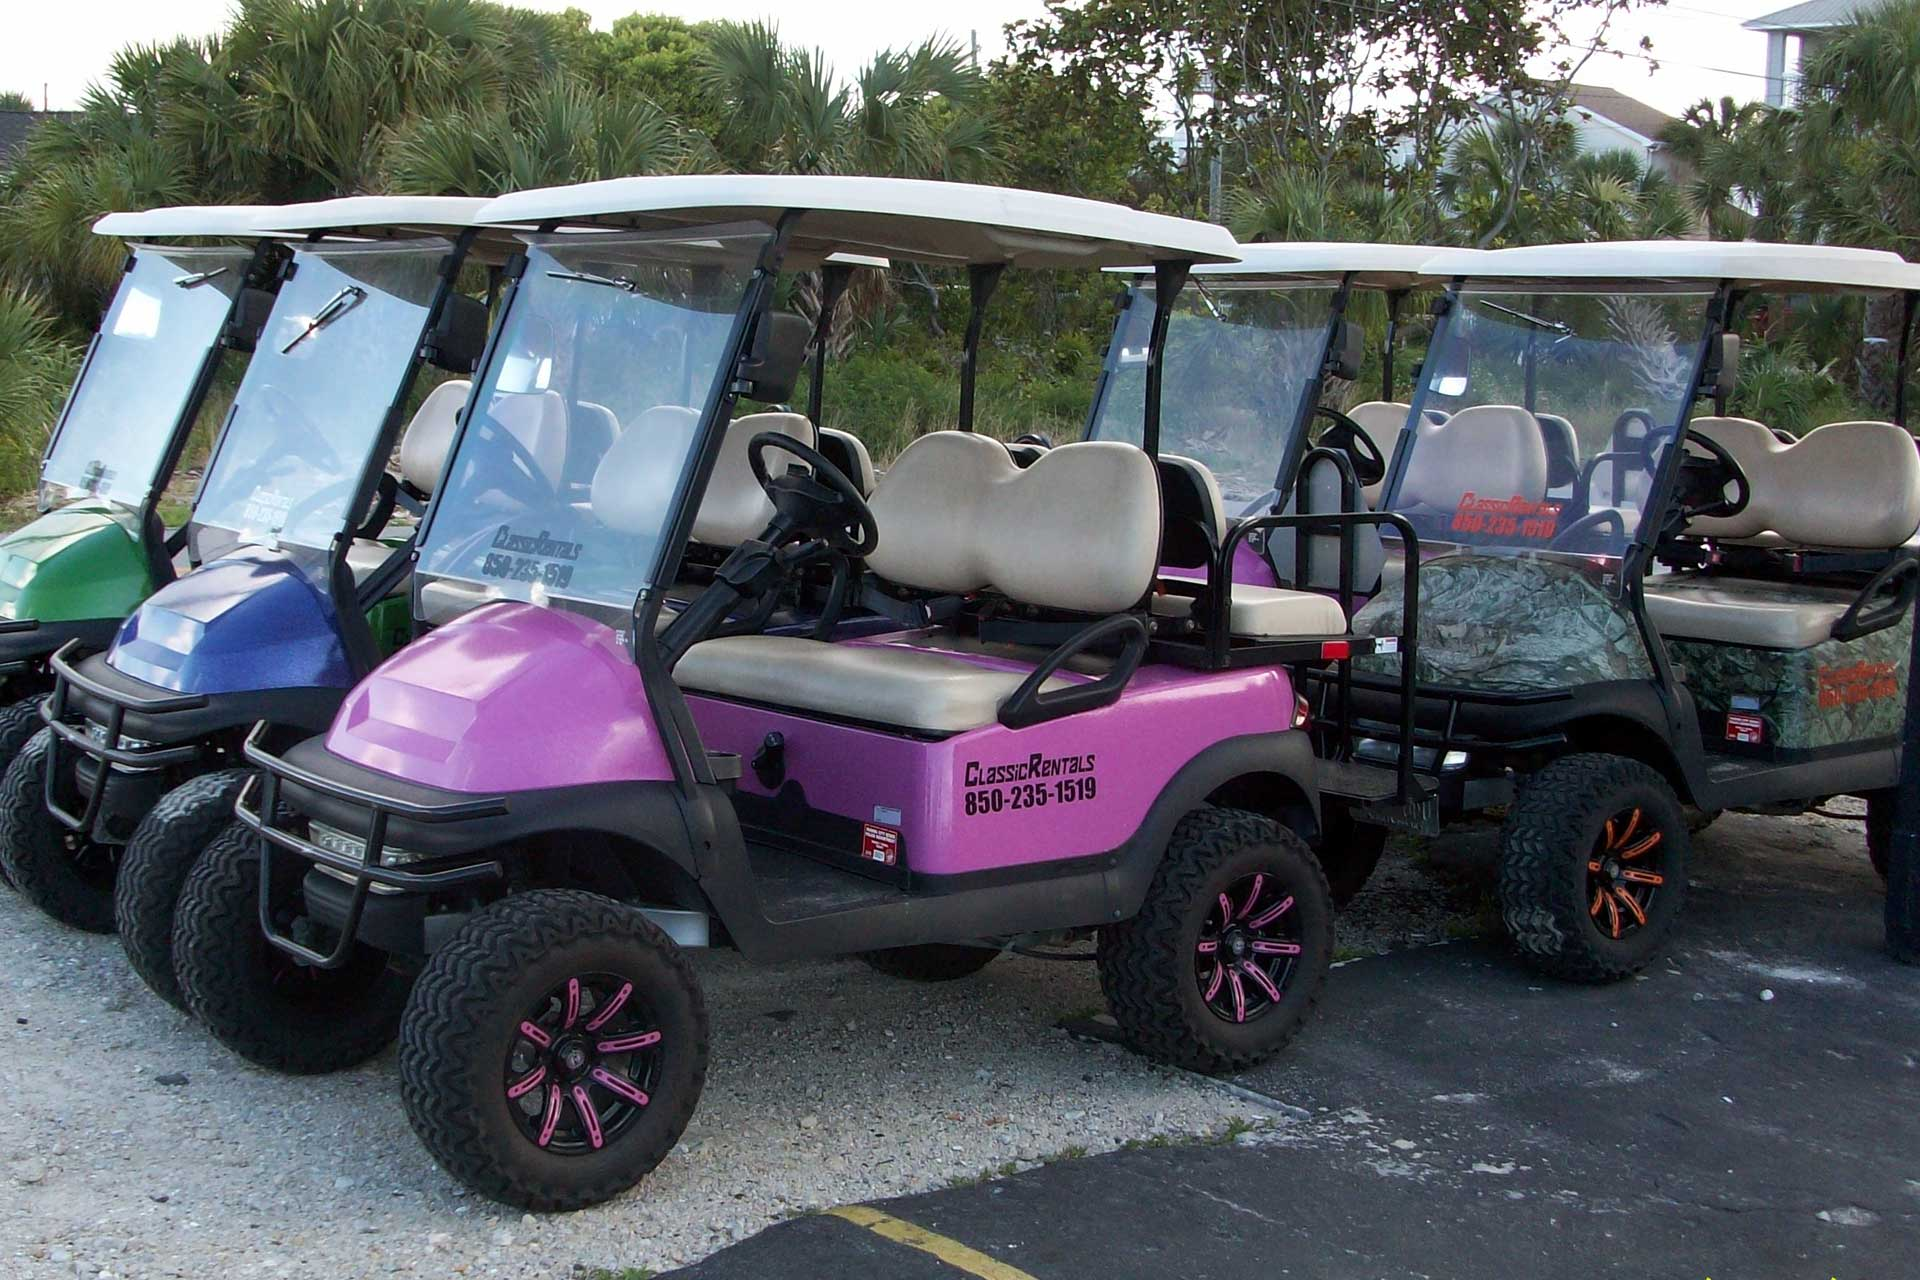 Some of our golf carts for rent in Panama City Beach and 30A Florida